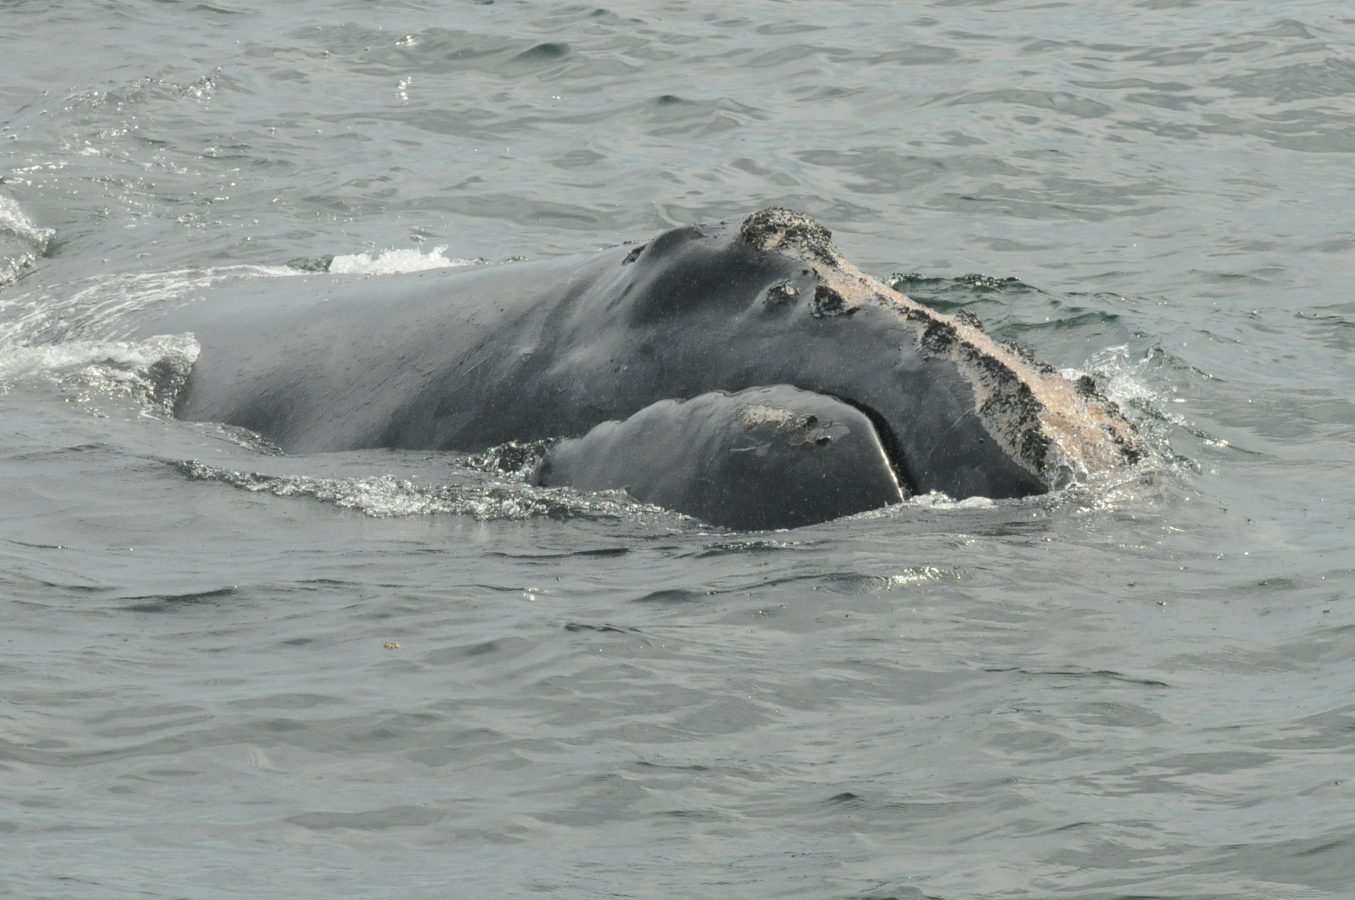 Mogul the North Atlantic right whale